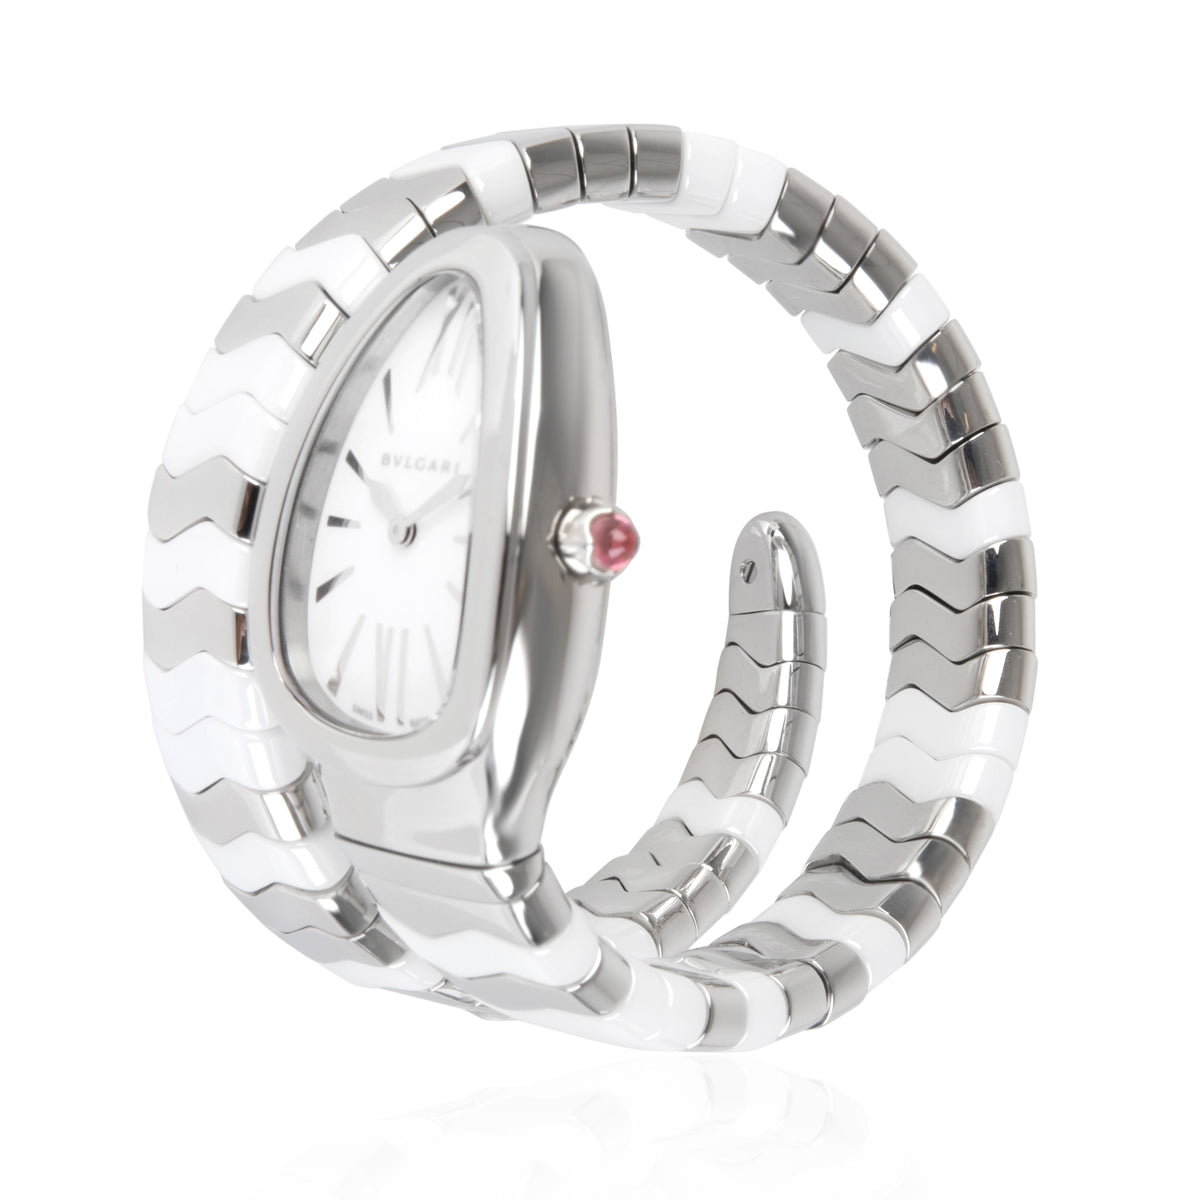 Bulgari Serpenti Spiga SP35S Women's Watch in  Stainless Steel/Ceramic